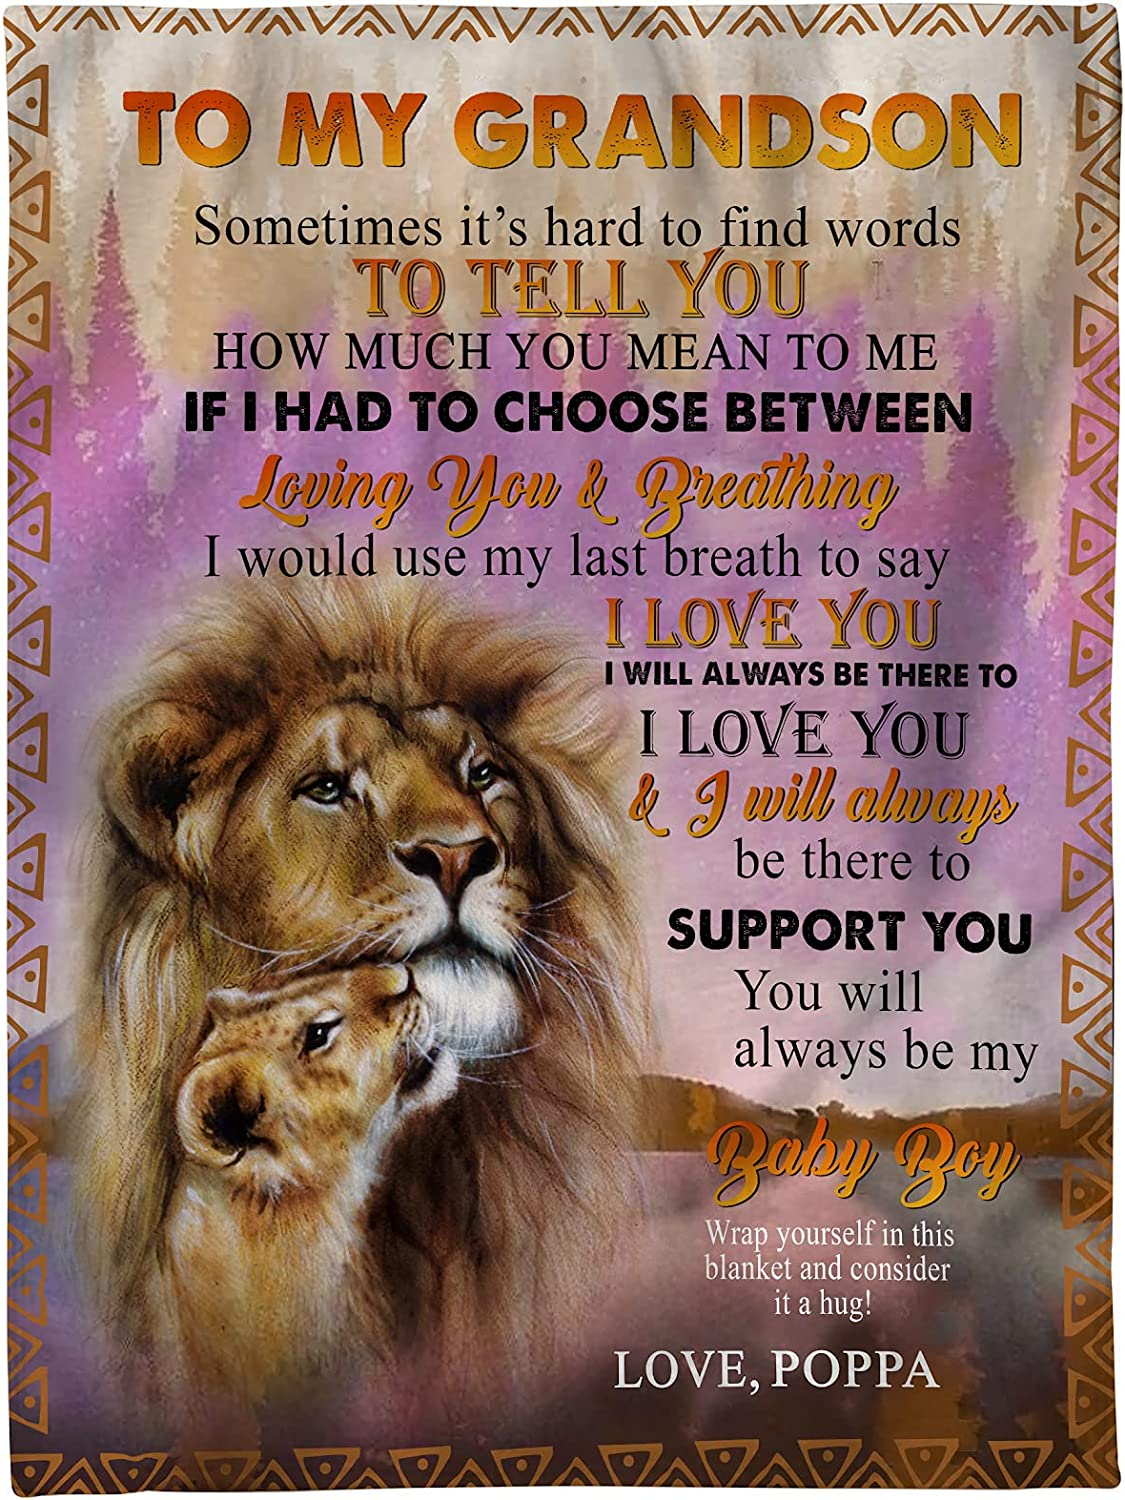 Personalized Blanket-to My Grandson Popular brand Selling rankings Lion Always You Love Support